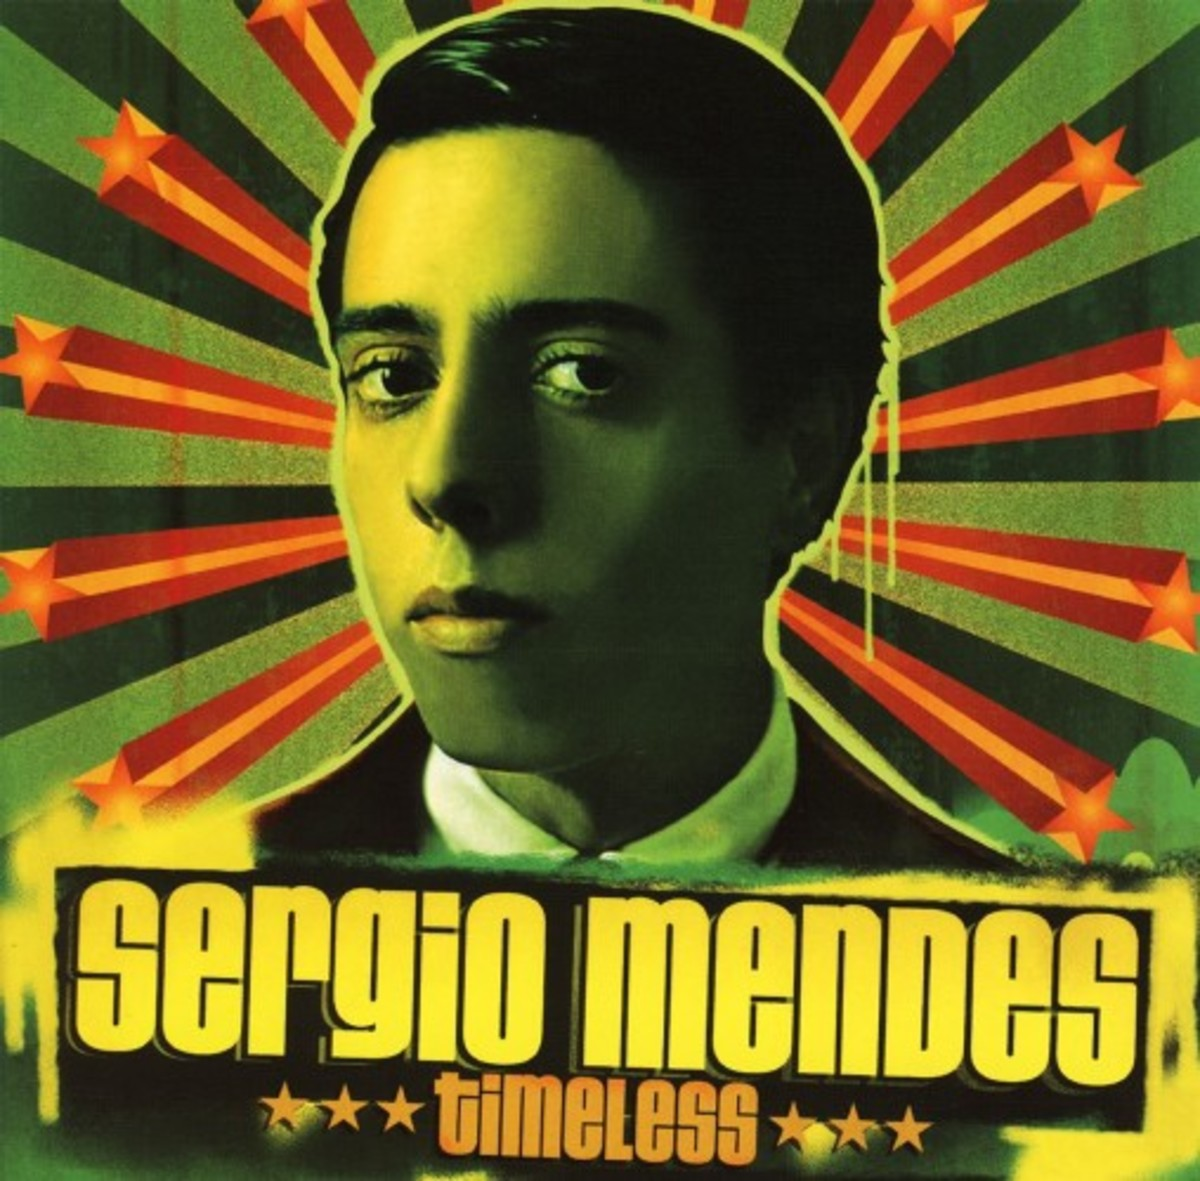 [AllCDCovers]_sergio_mendes_timeless_2006_retail_cd-front[1]